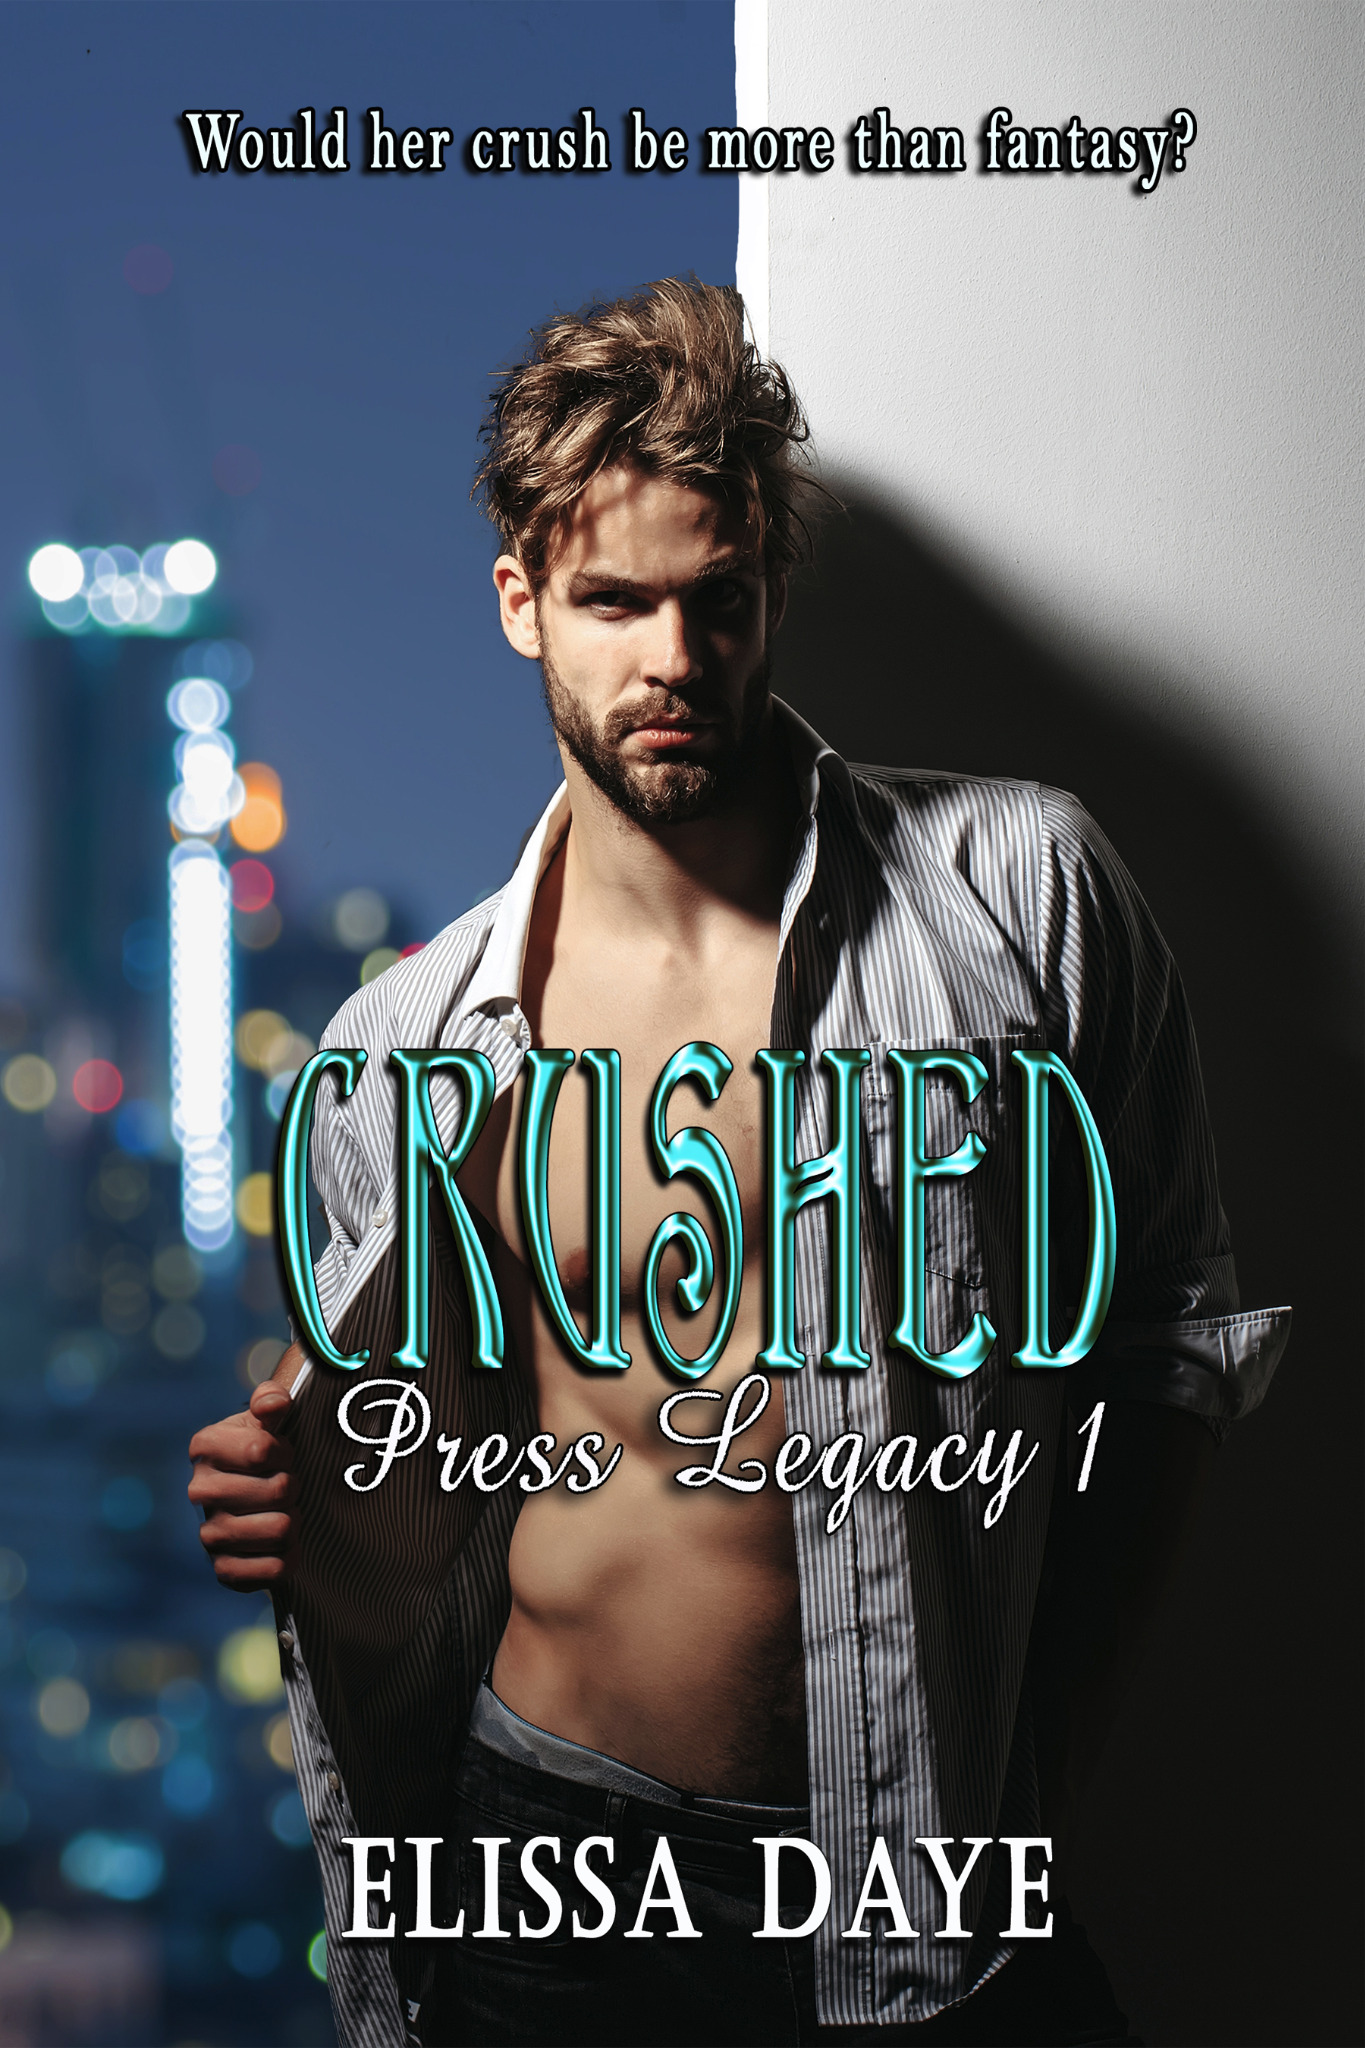 Crushed - Press Legacy Book 1